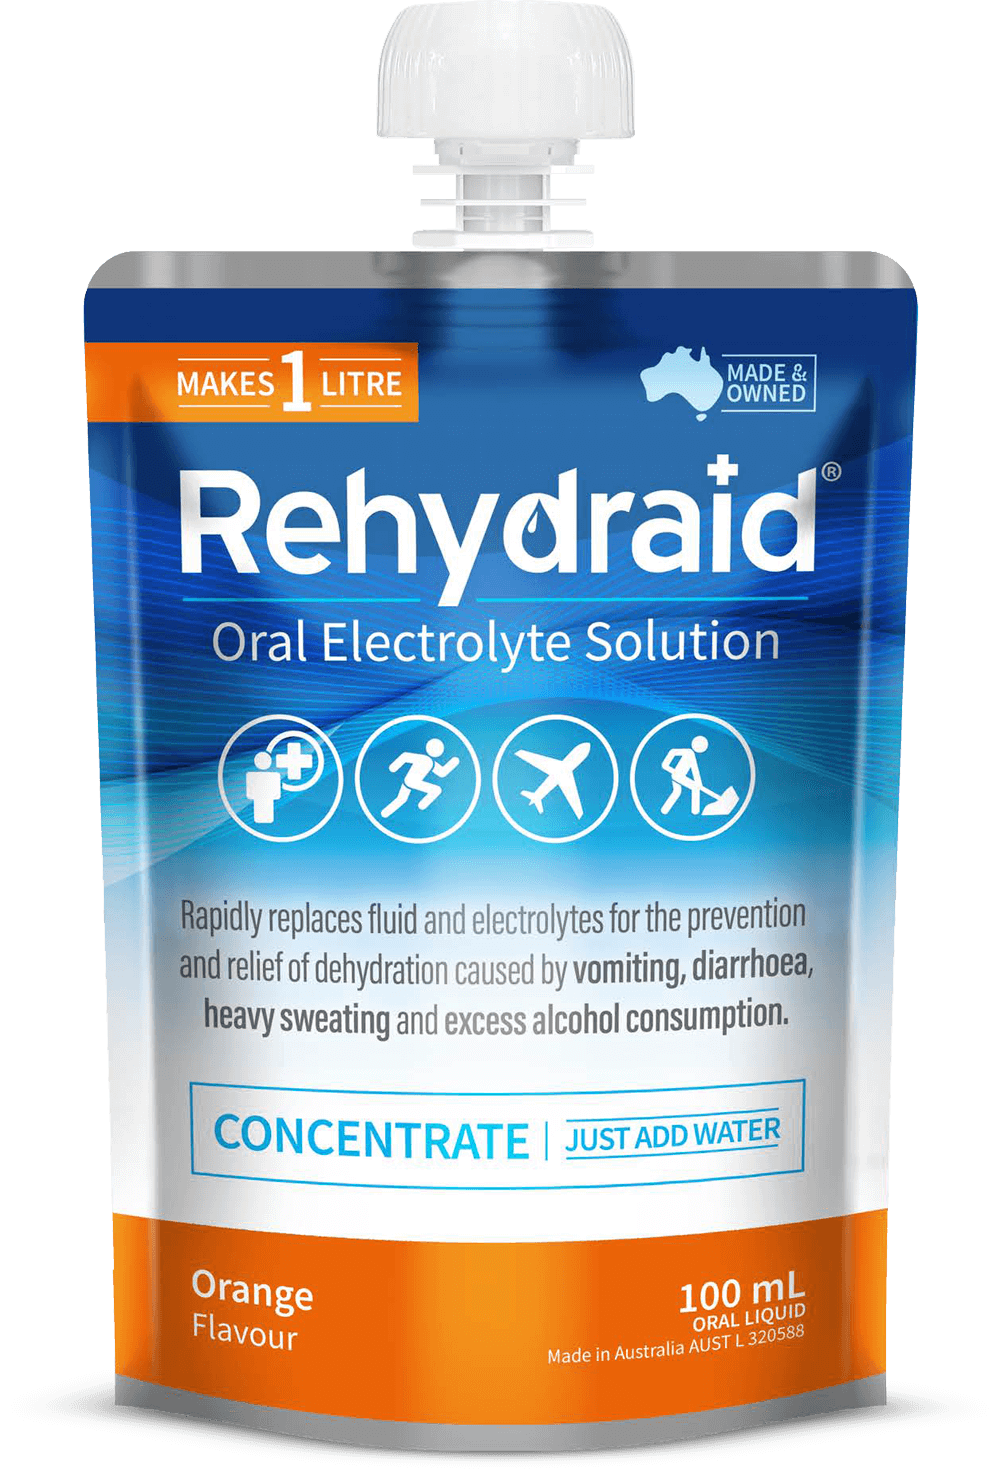 Rehydraid concentrate